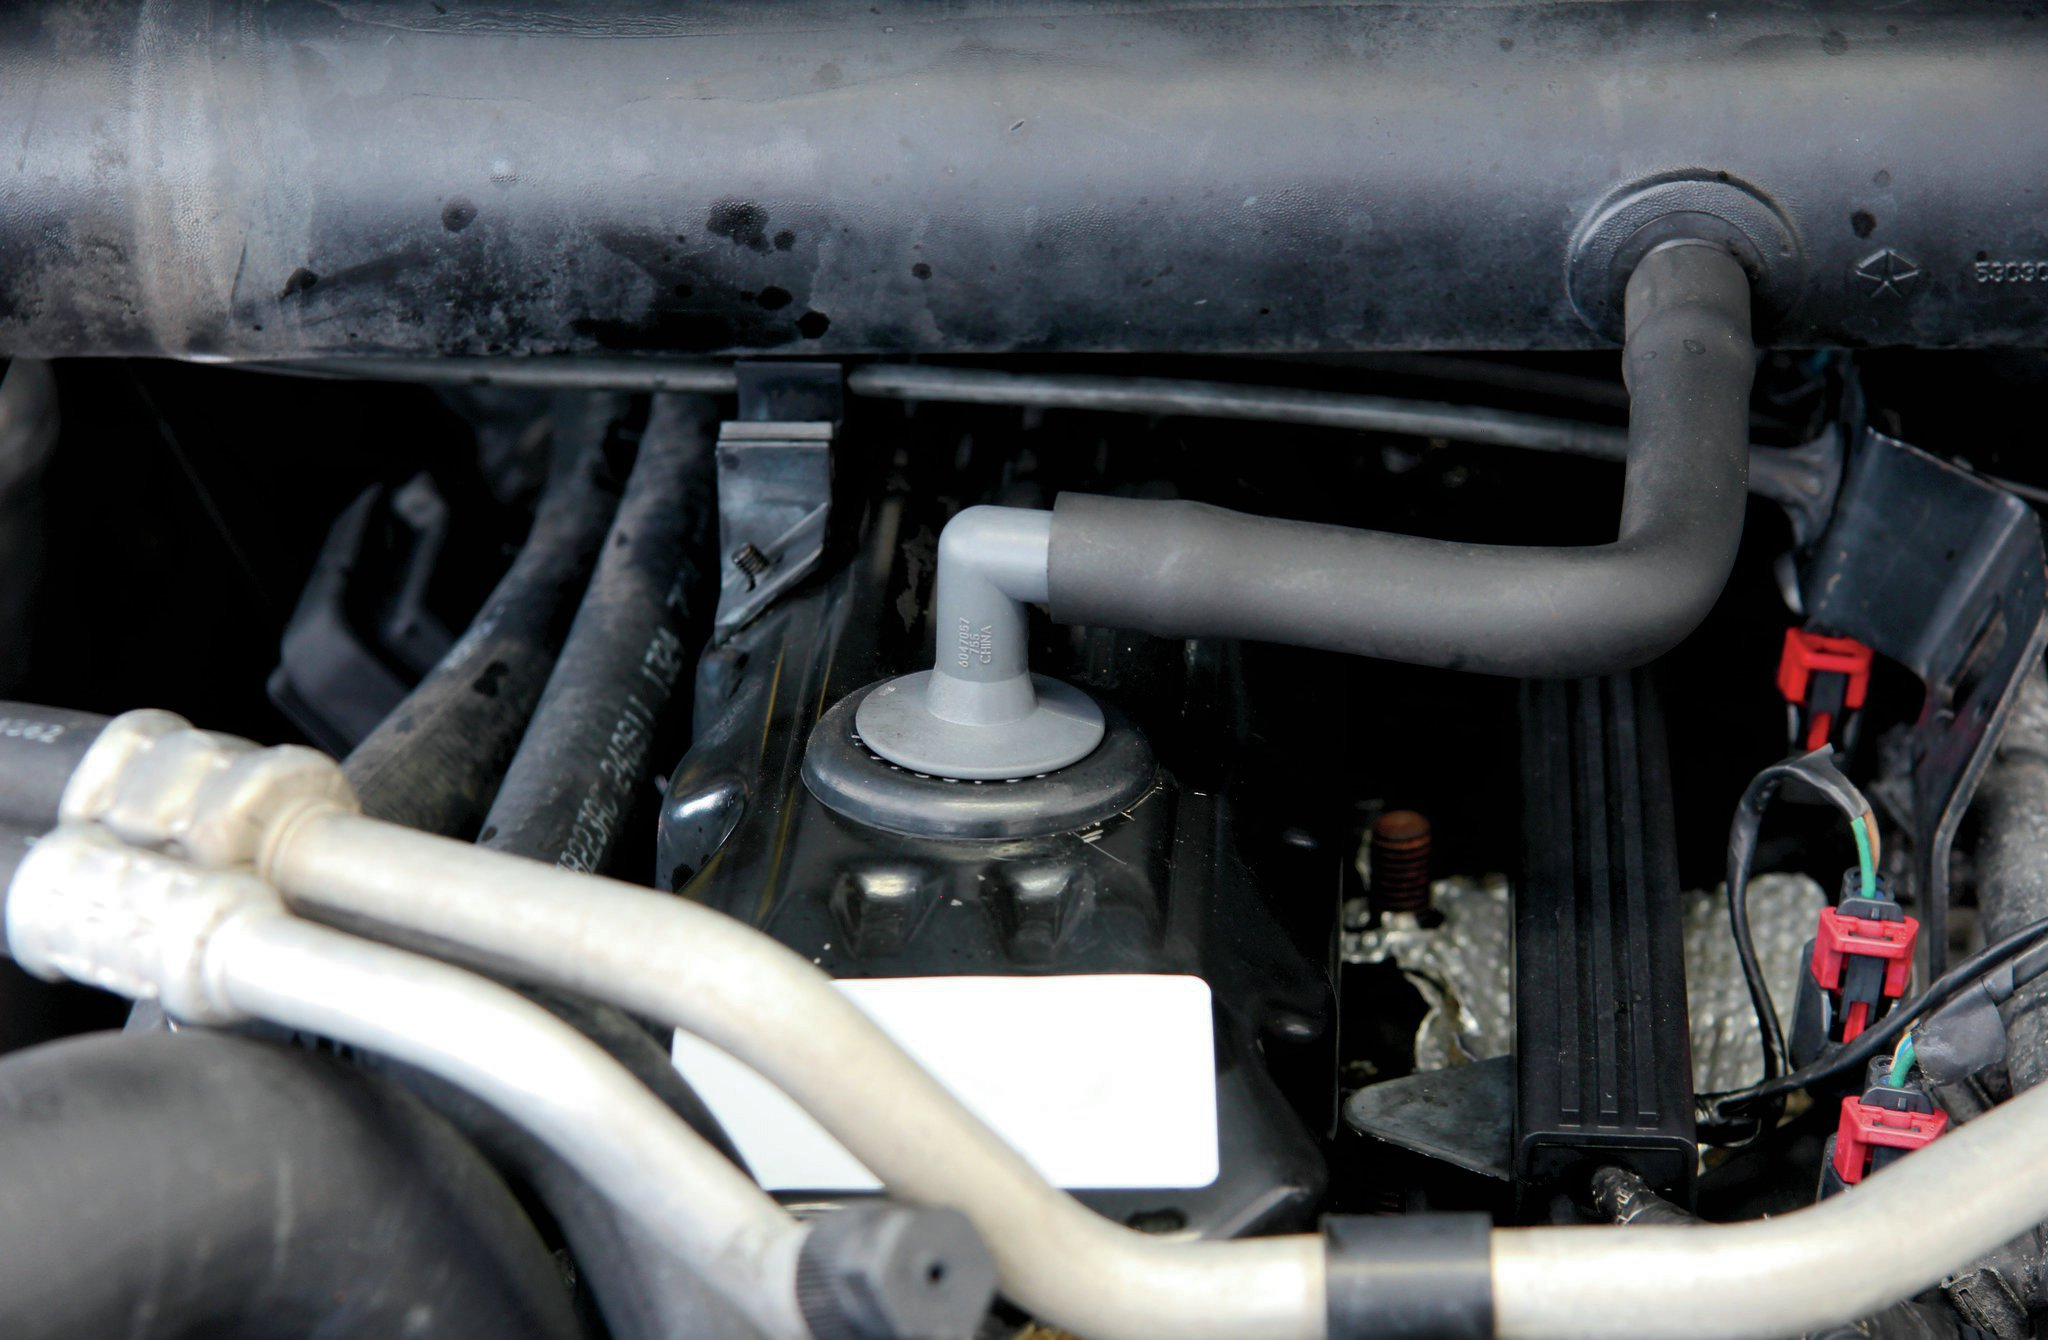 The 4.0L inline-six engine has a reputation for being reliable but leaky. A very common leak, which is sometimes misdiagnosed for a rear main seal leak, comes from the crank case vents on top of the valve cover. This, in combination with a slightly leaking valve cover, can cause oil to run down the back of the block. Replacing the valve cover gasket, along with the breathers and grommets, will cost you around $40.